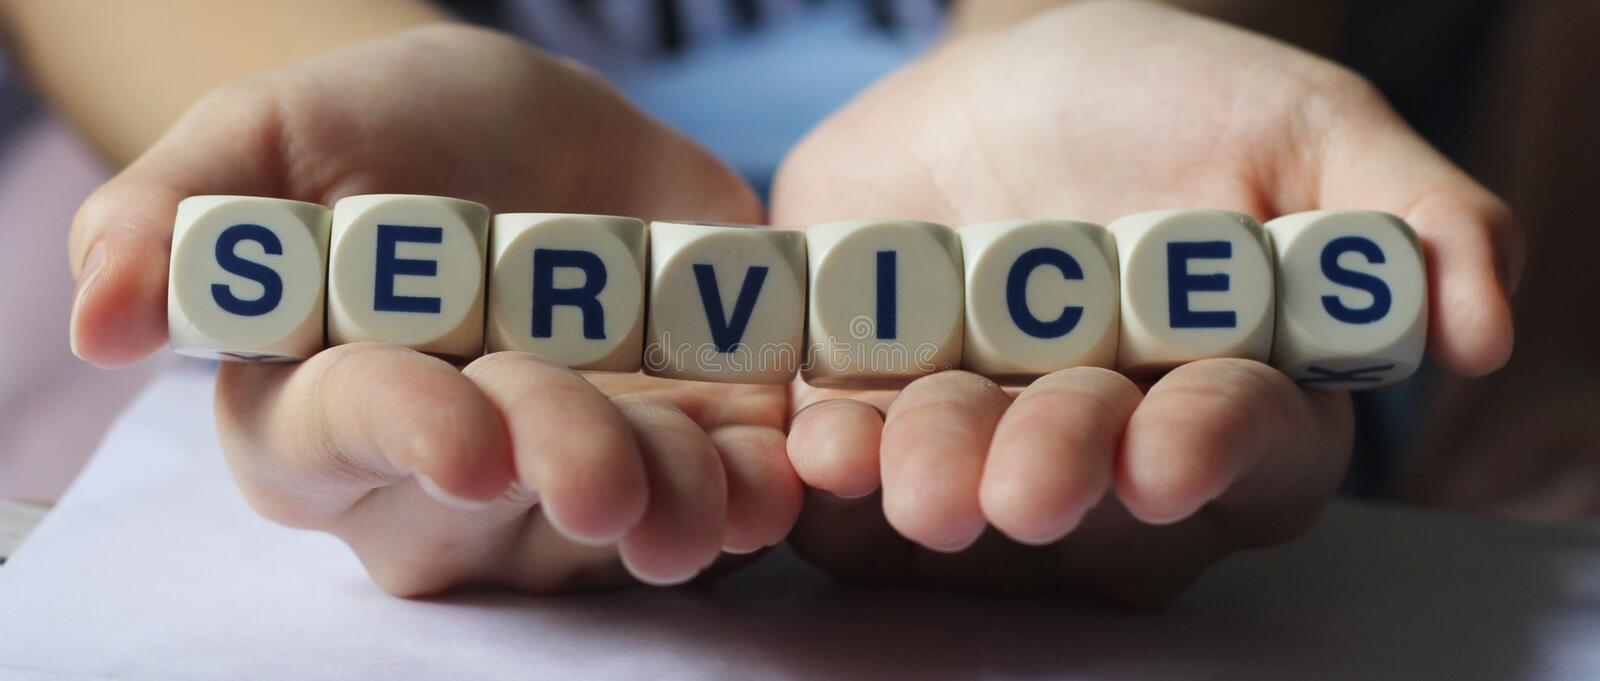 Services in our hands royalty free stock images